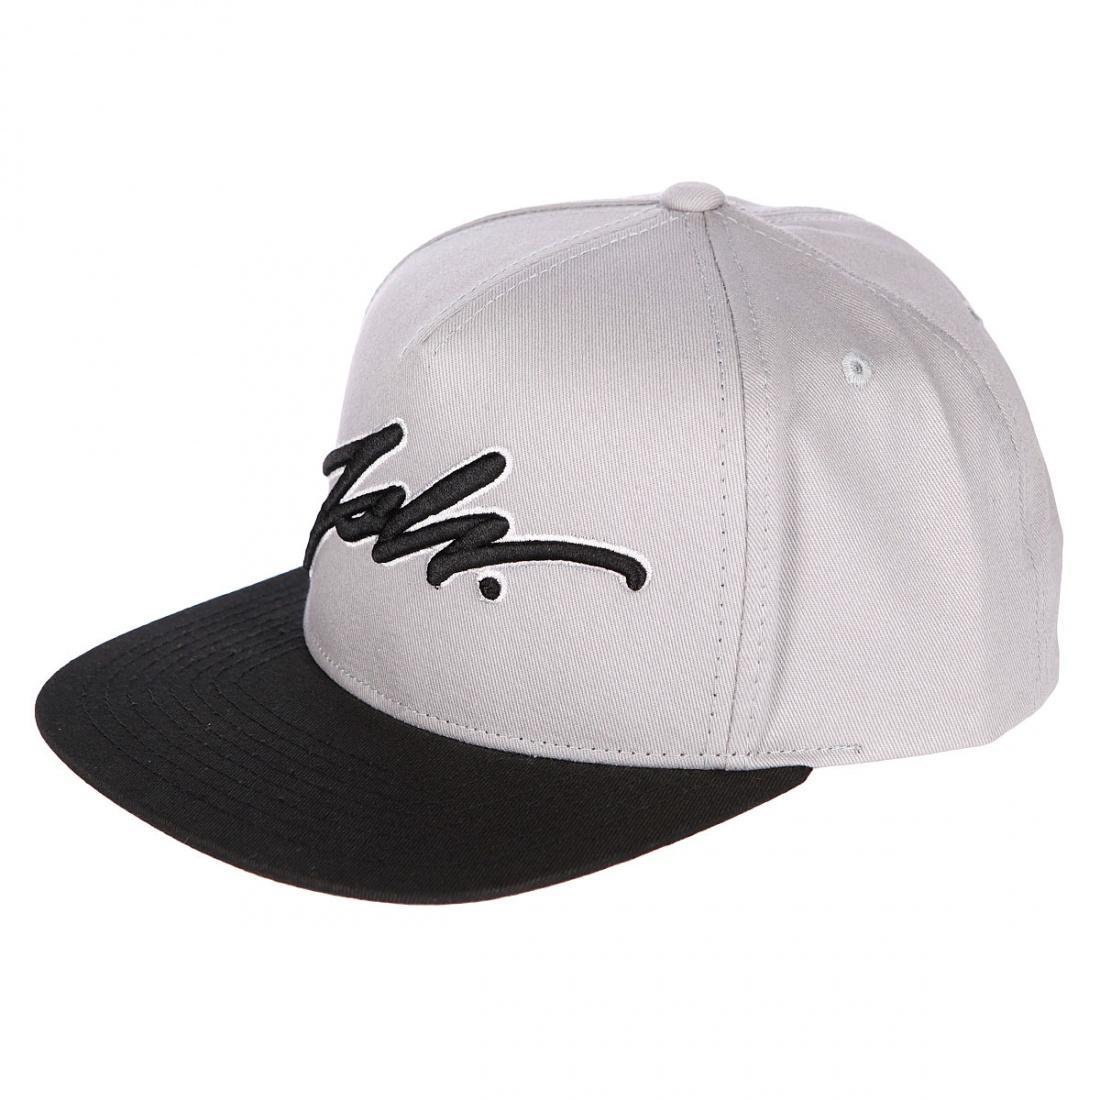 Бейсболка SIGNATURE SNAP BACK от Board Shop №1